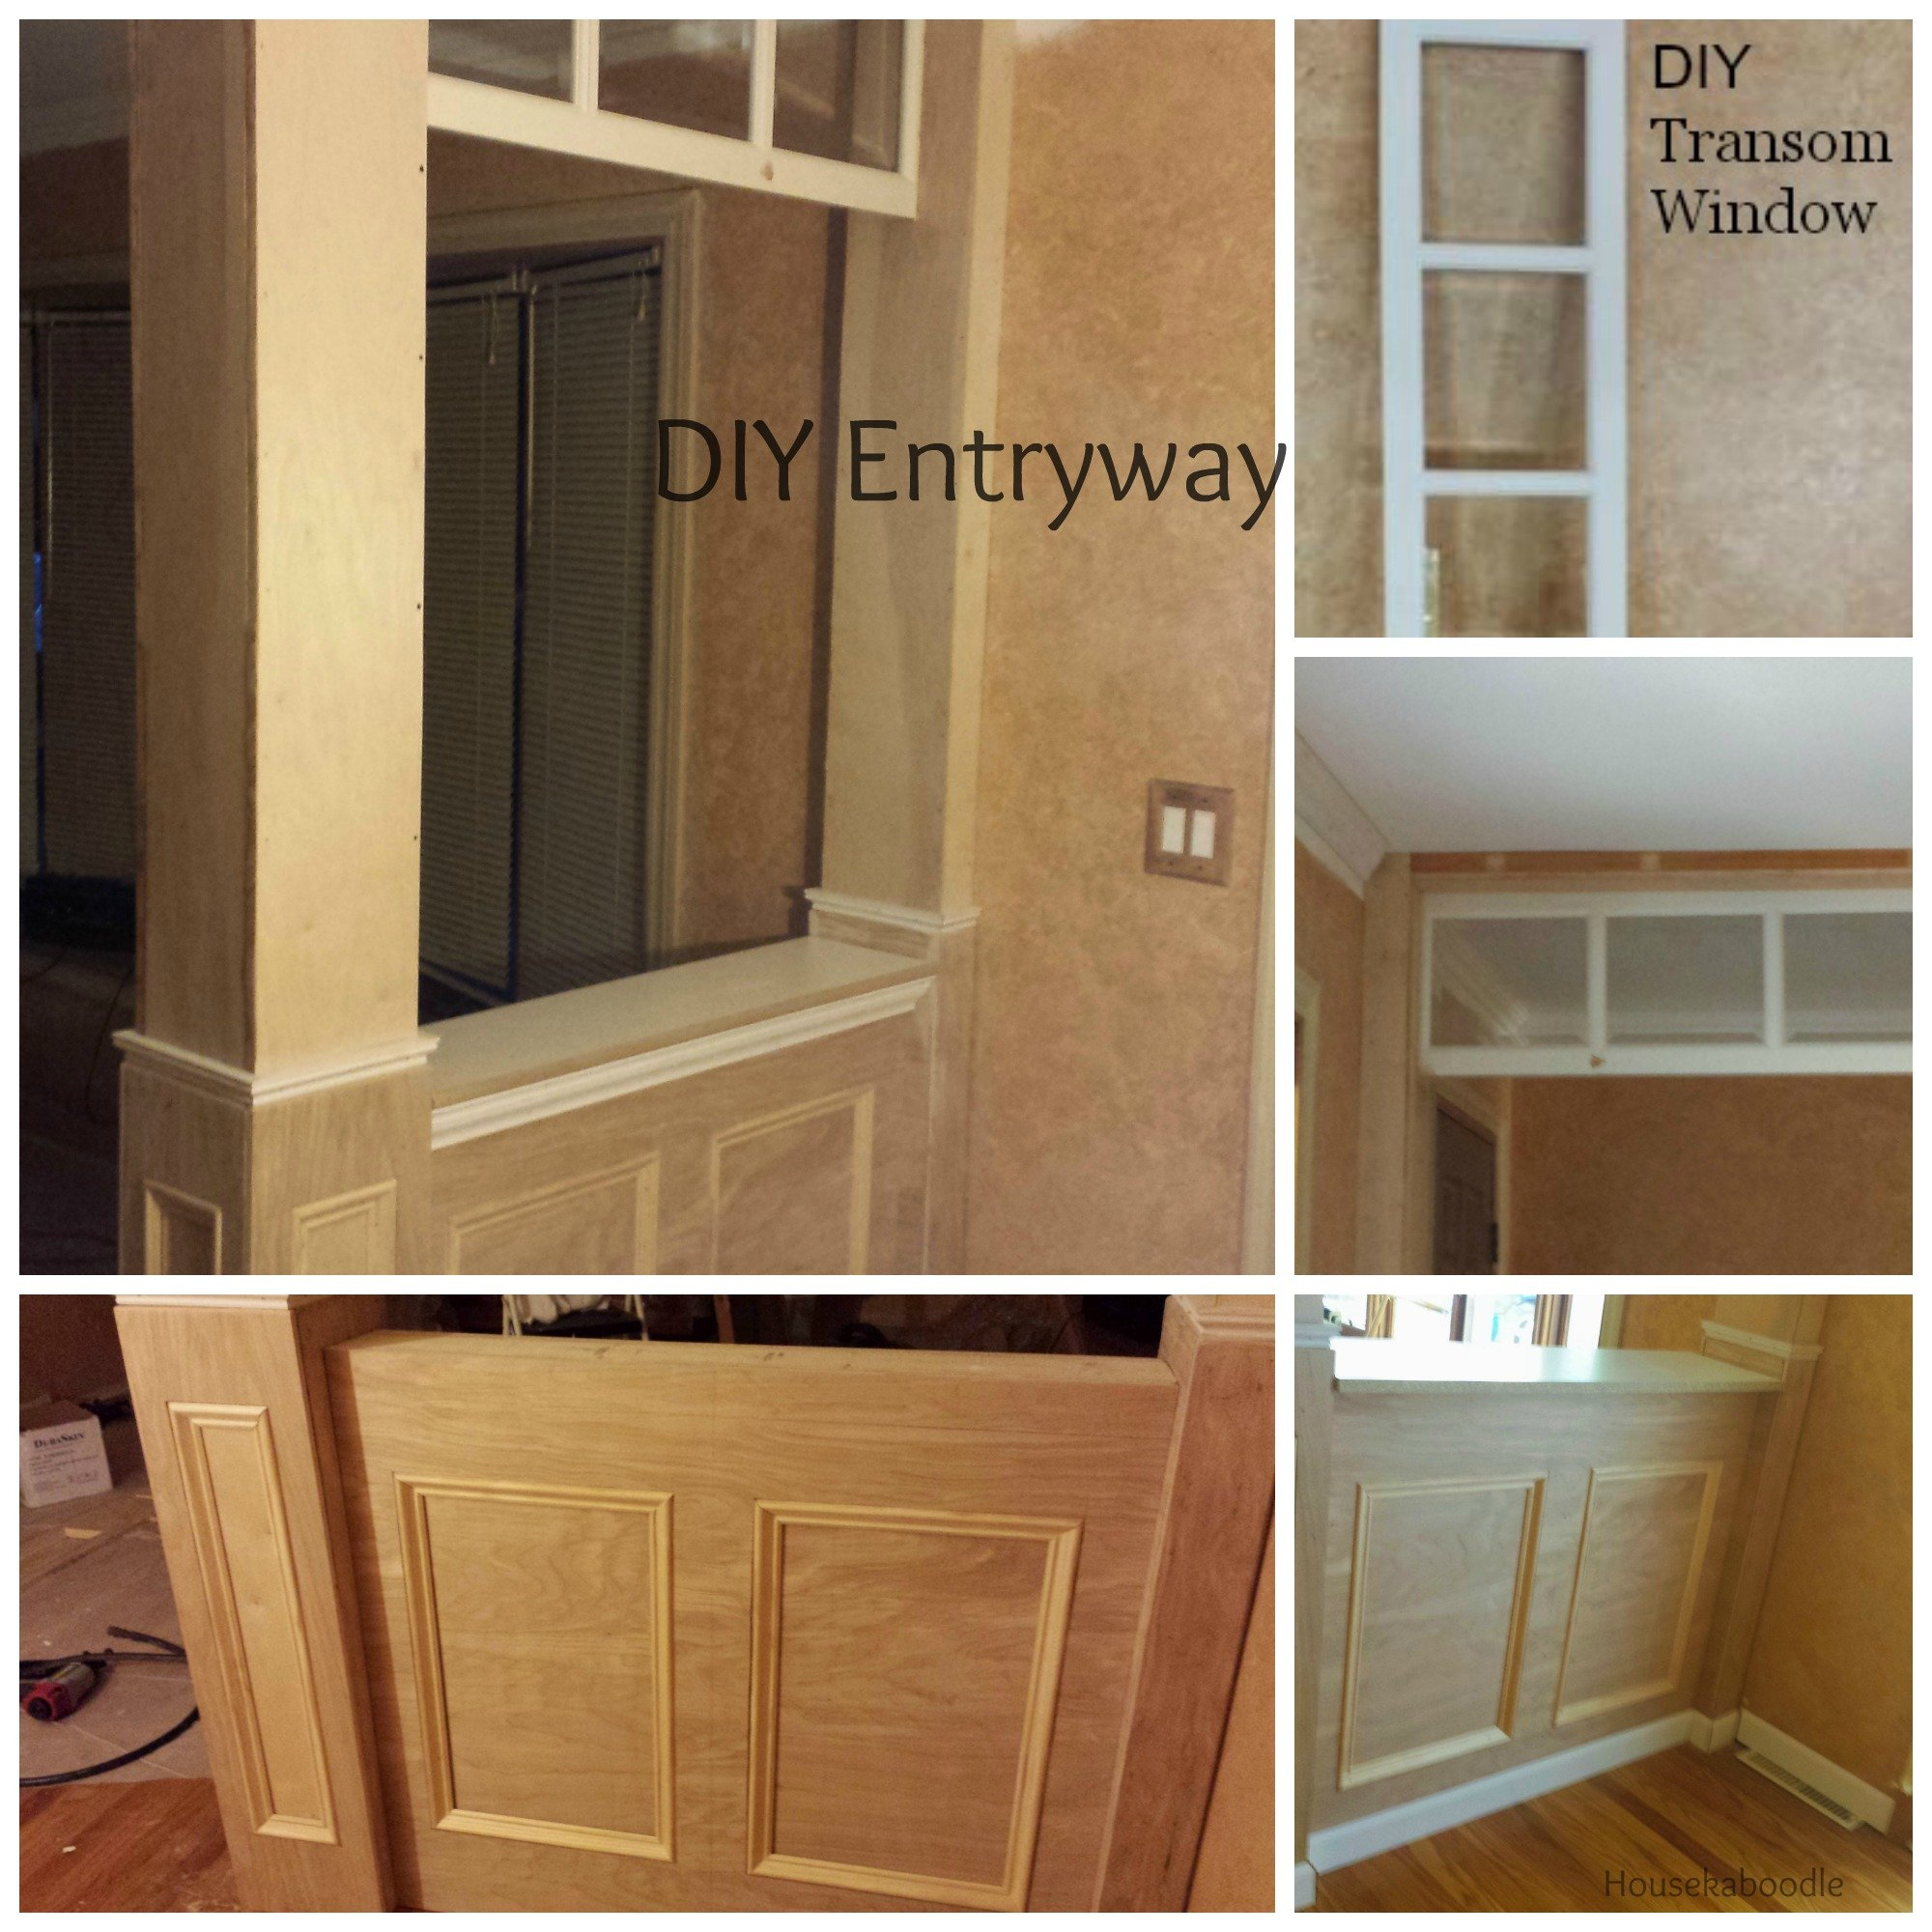 Our Diy Project To Build An Entryway